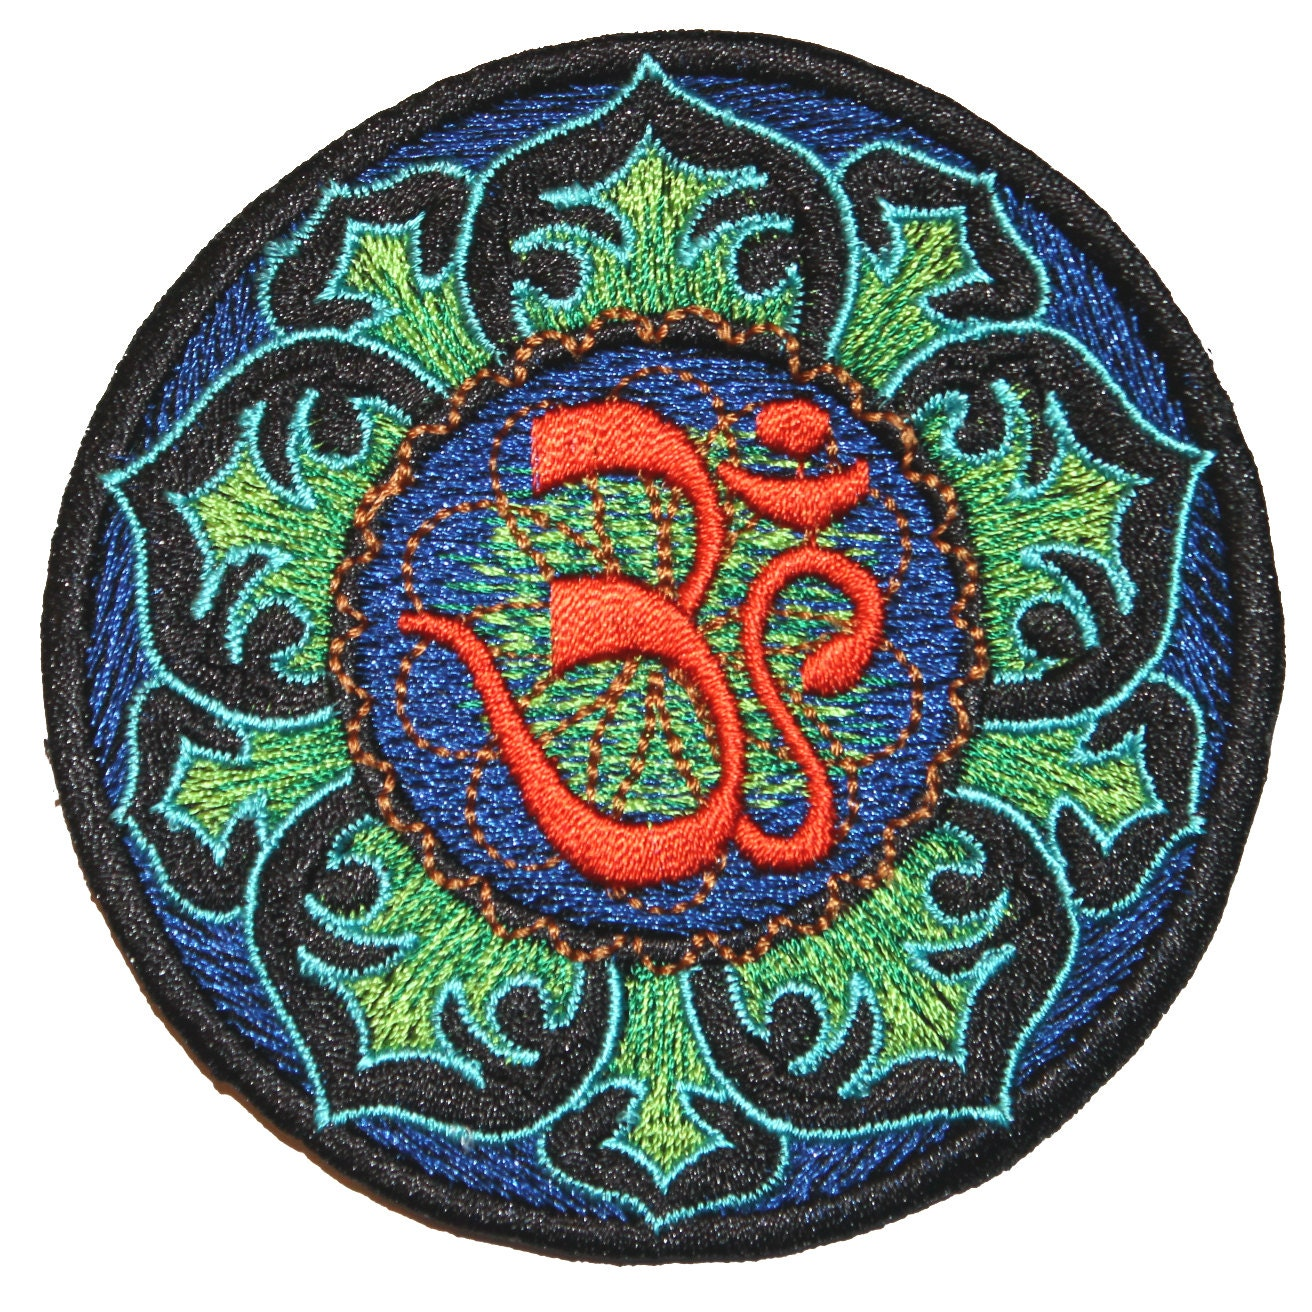 Blue and Orange Lotus Flower Om Iron On Patch Embroidery Sewing DIY Customise Denim Cotton Hippy Hipster Retro Vintage Spiritual 60s